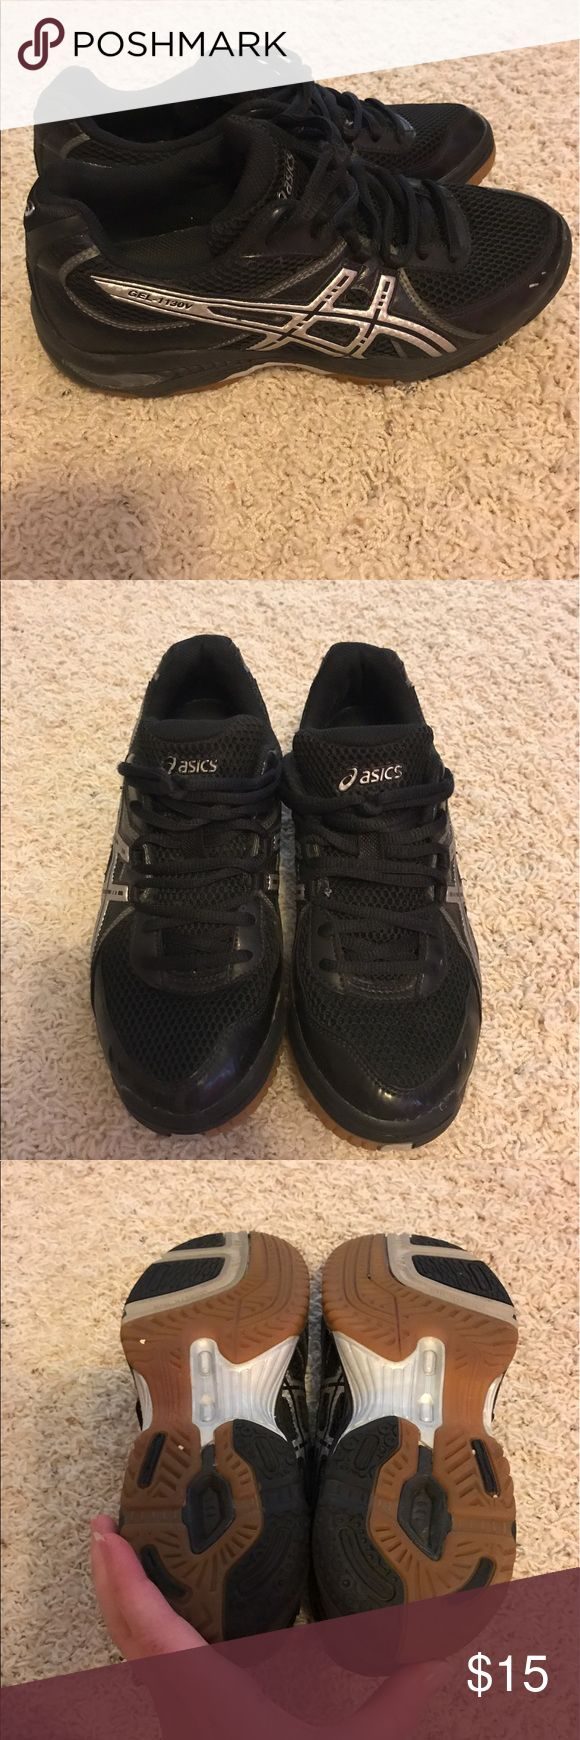 Black asics gel sneakers Black asics gel volleyball sneakers with silver logo. Size 8 excellent used condition. Asics Shoes Sneakers